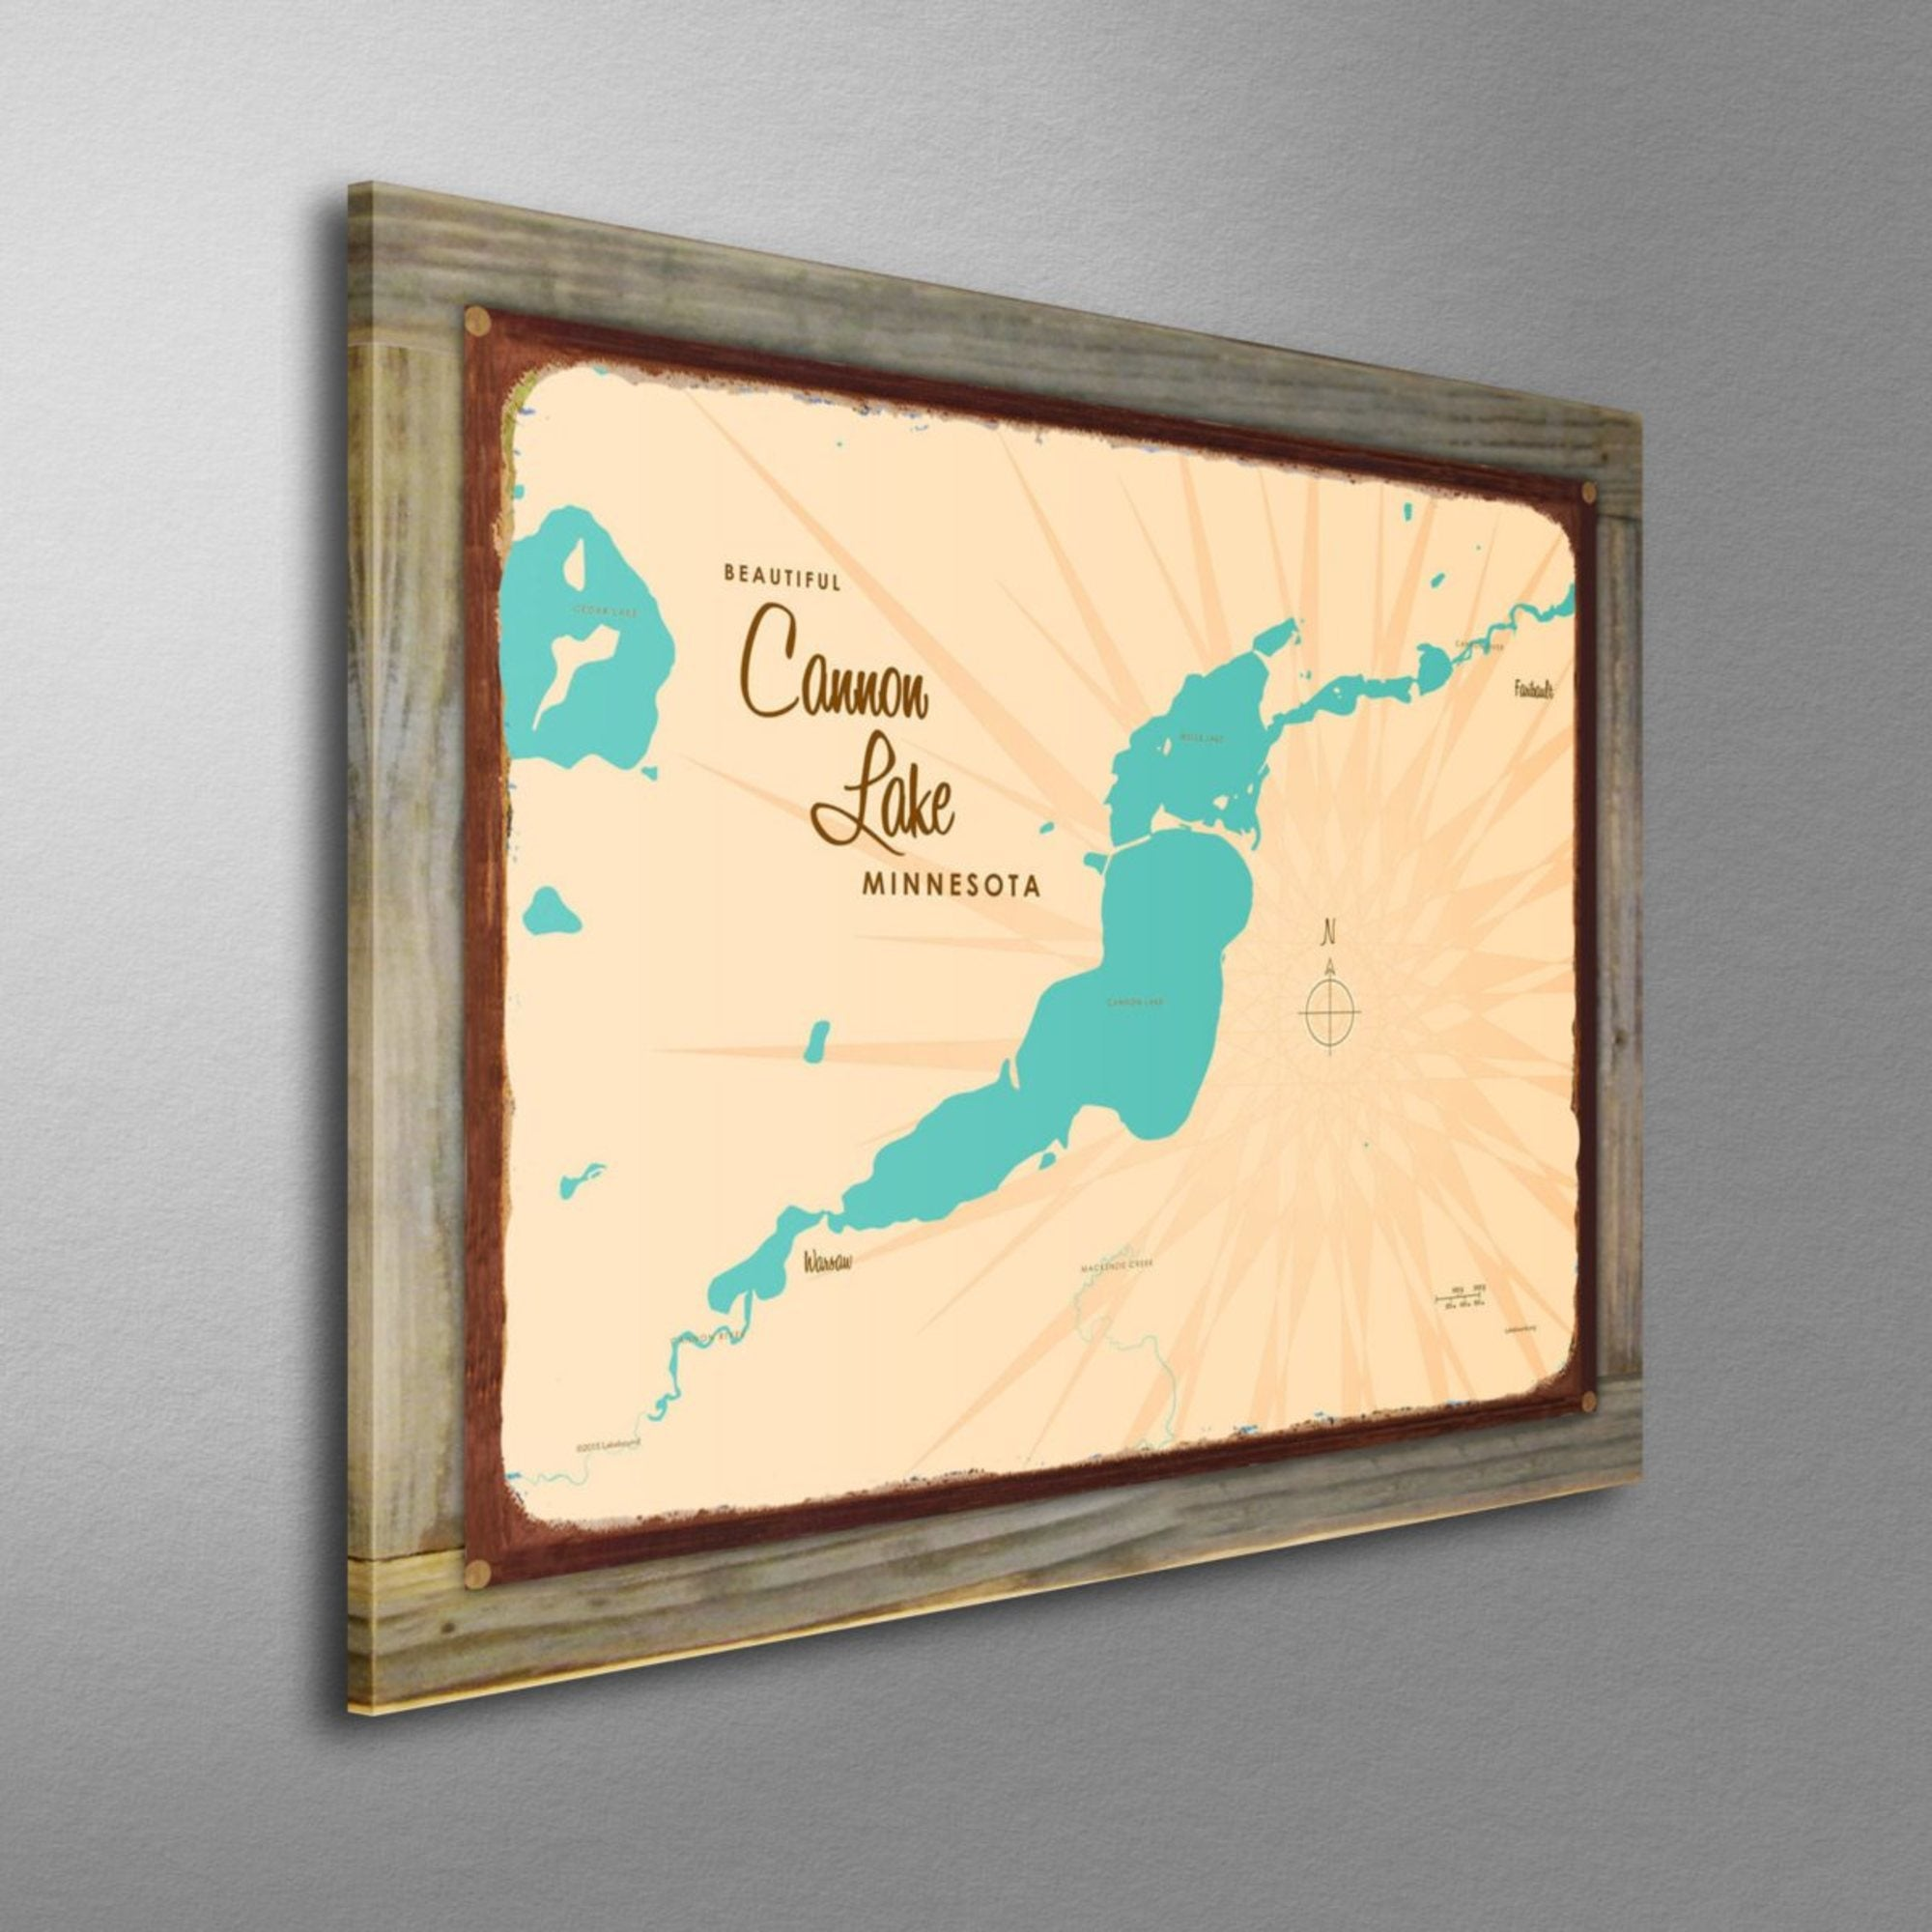 Cannon Lake Minnesota, Wood-Mounted Rustic Metal Sign Map Art